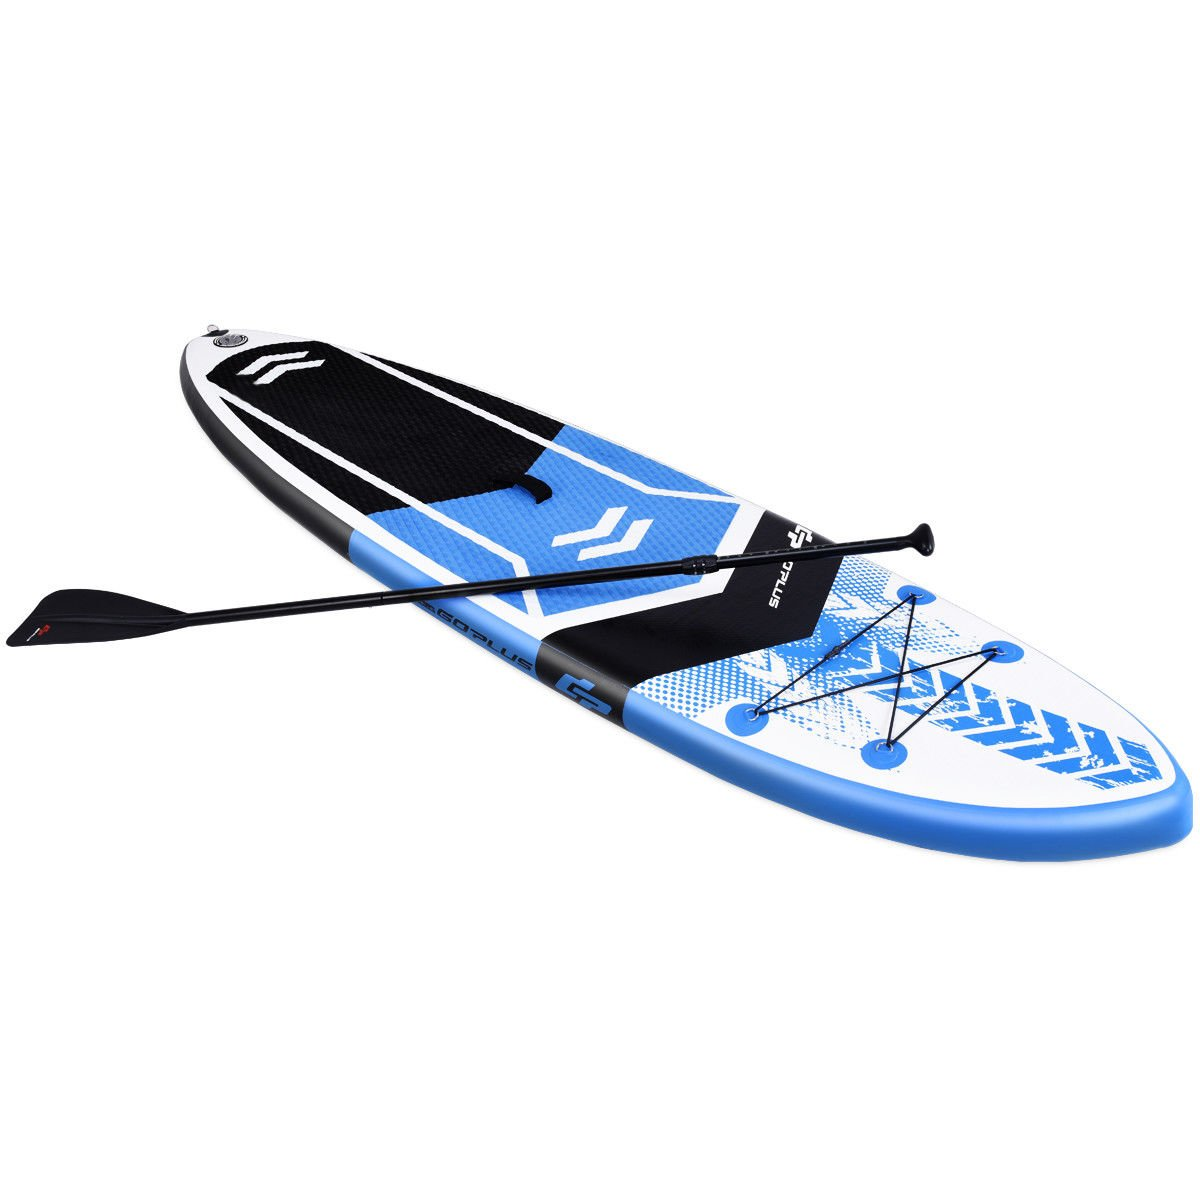 Goplus 10 6 Inflatable Stand Up Paddle Board SUP Cruiser with Free Premium SUP Accessories, Backpack, Adjustable Paddle and Hand Pump, for Youth Adult